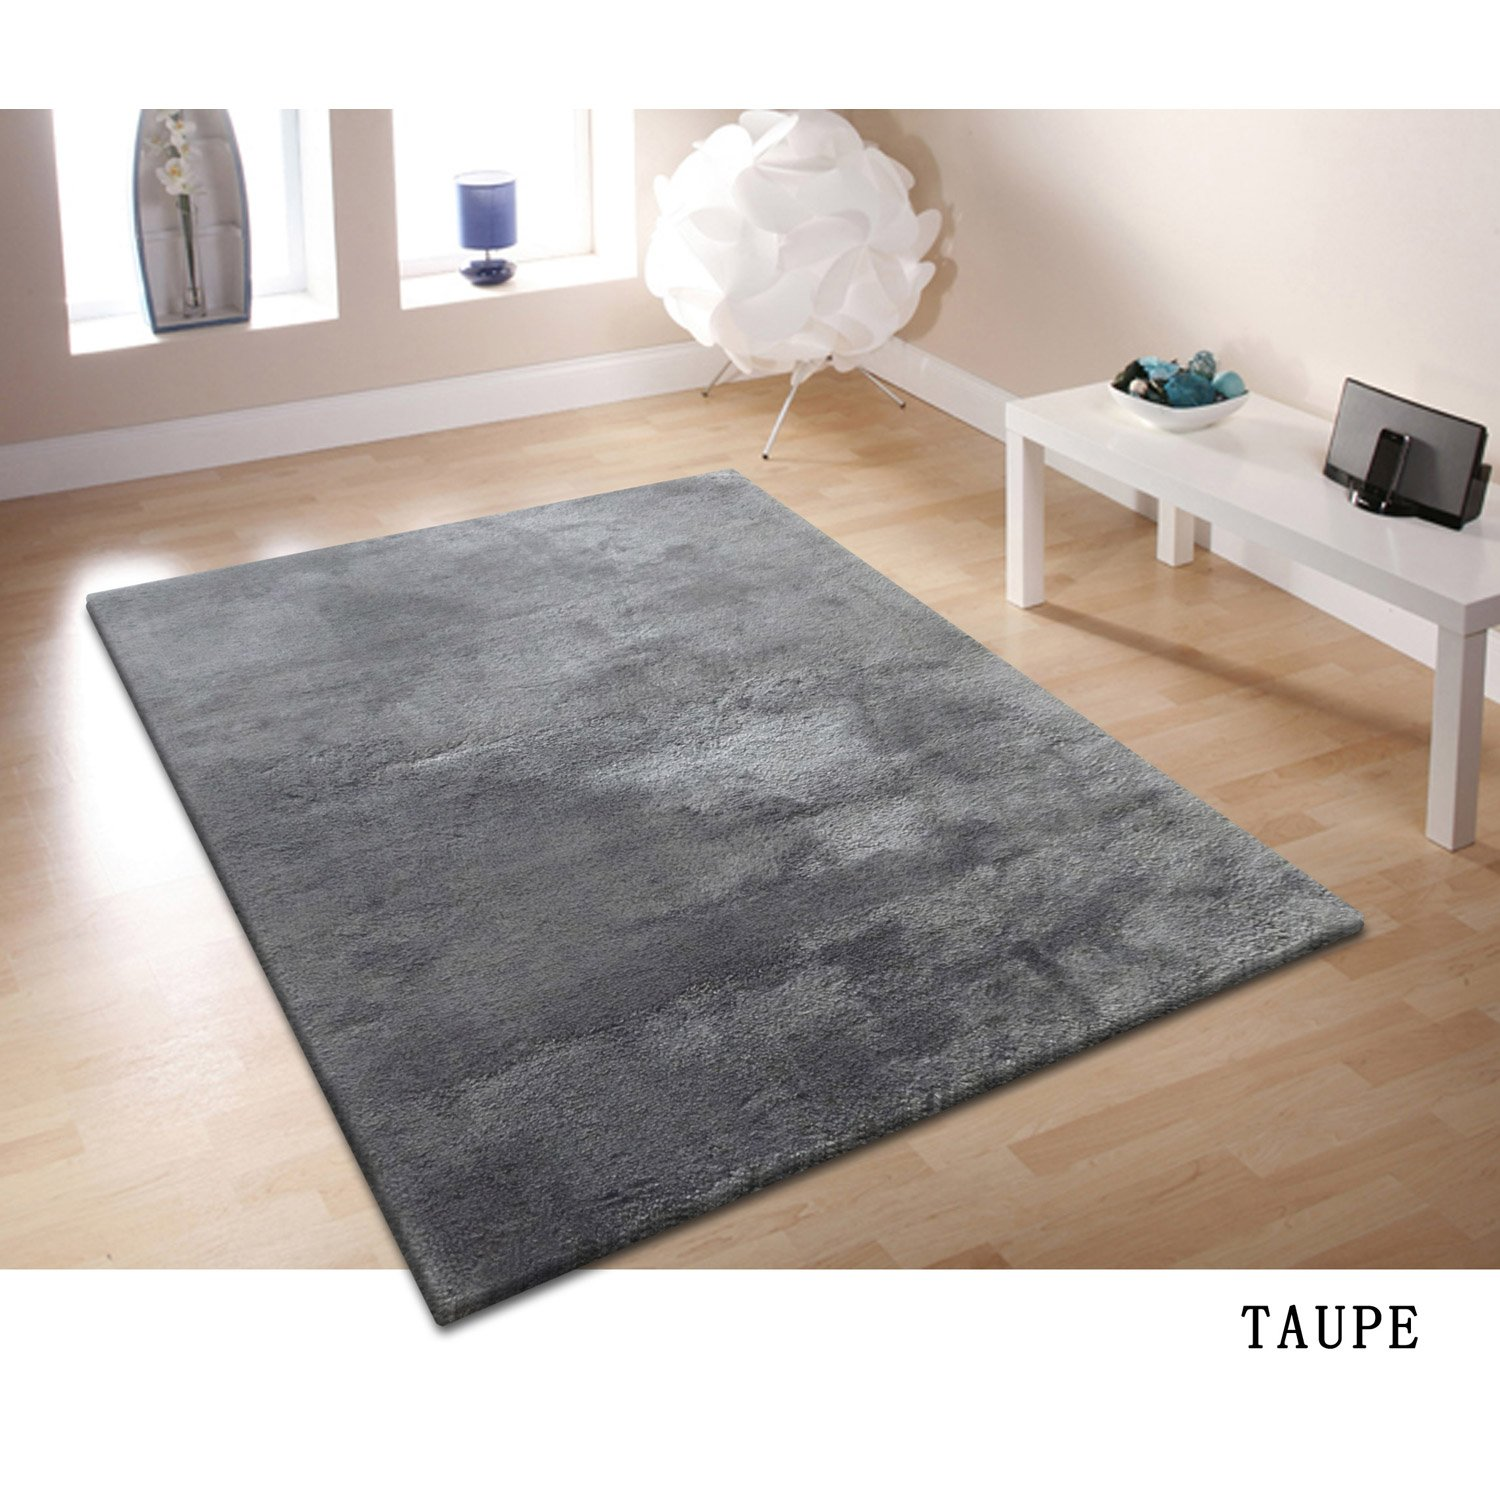 tapis doux salon 12 id es de d coration int rieure french decor. Black Bedroom Furniture Sets. Home Design Ideas